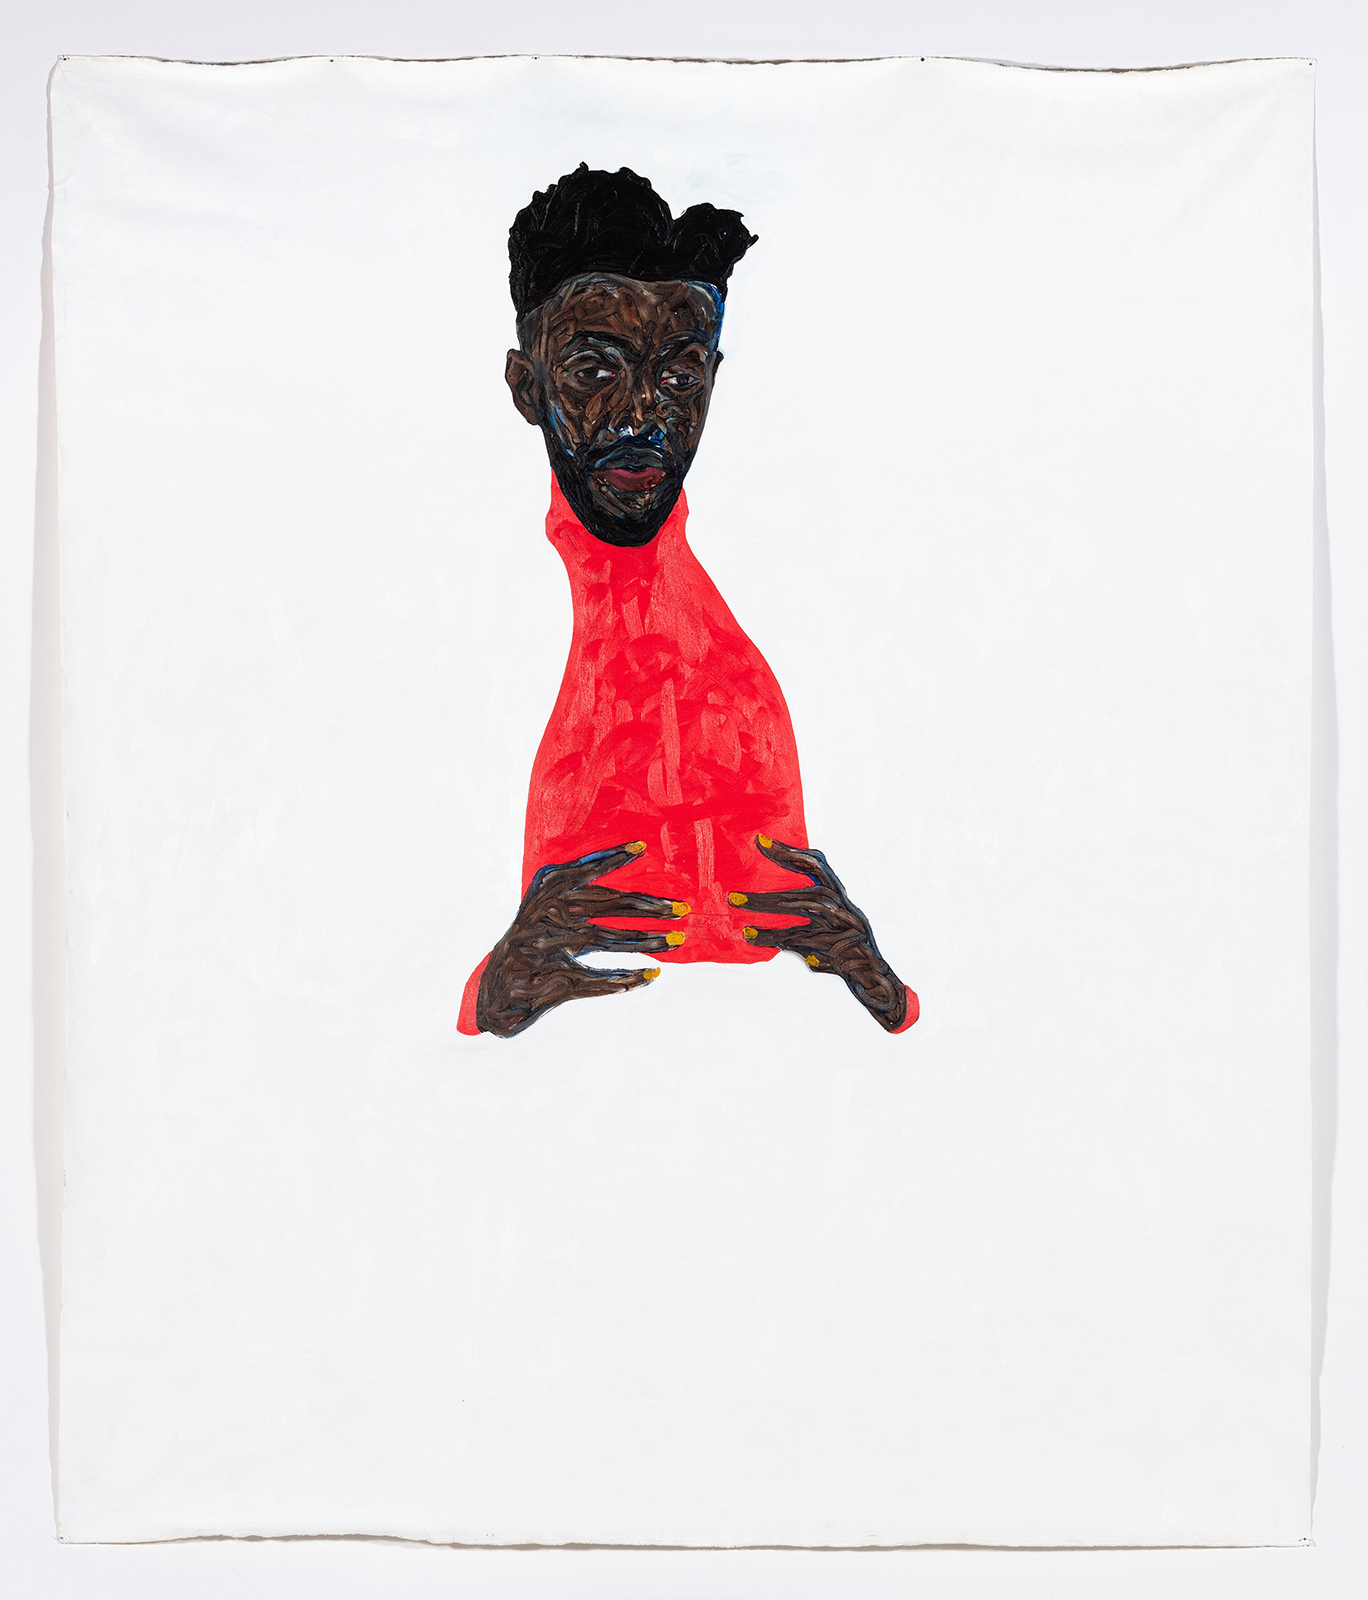 """When I look at you, do you see me?"" Painter Amoako Boafo urges us to consider the complexities of blackness"